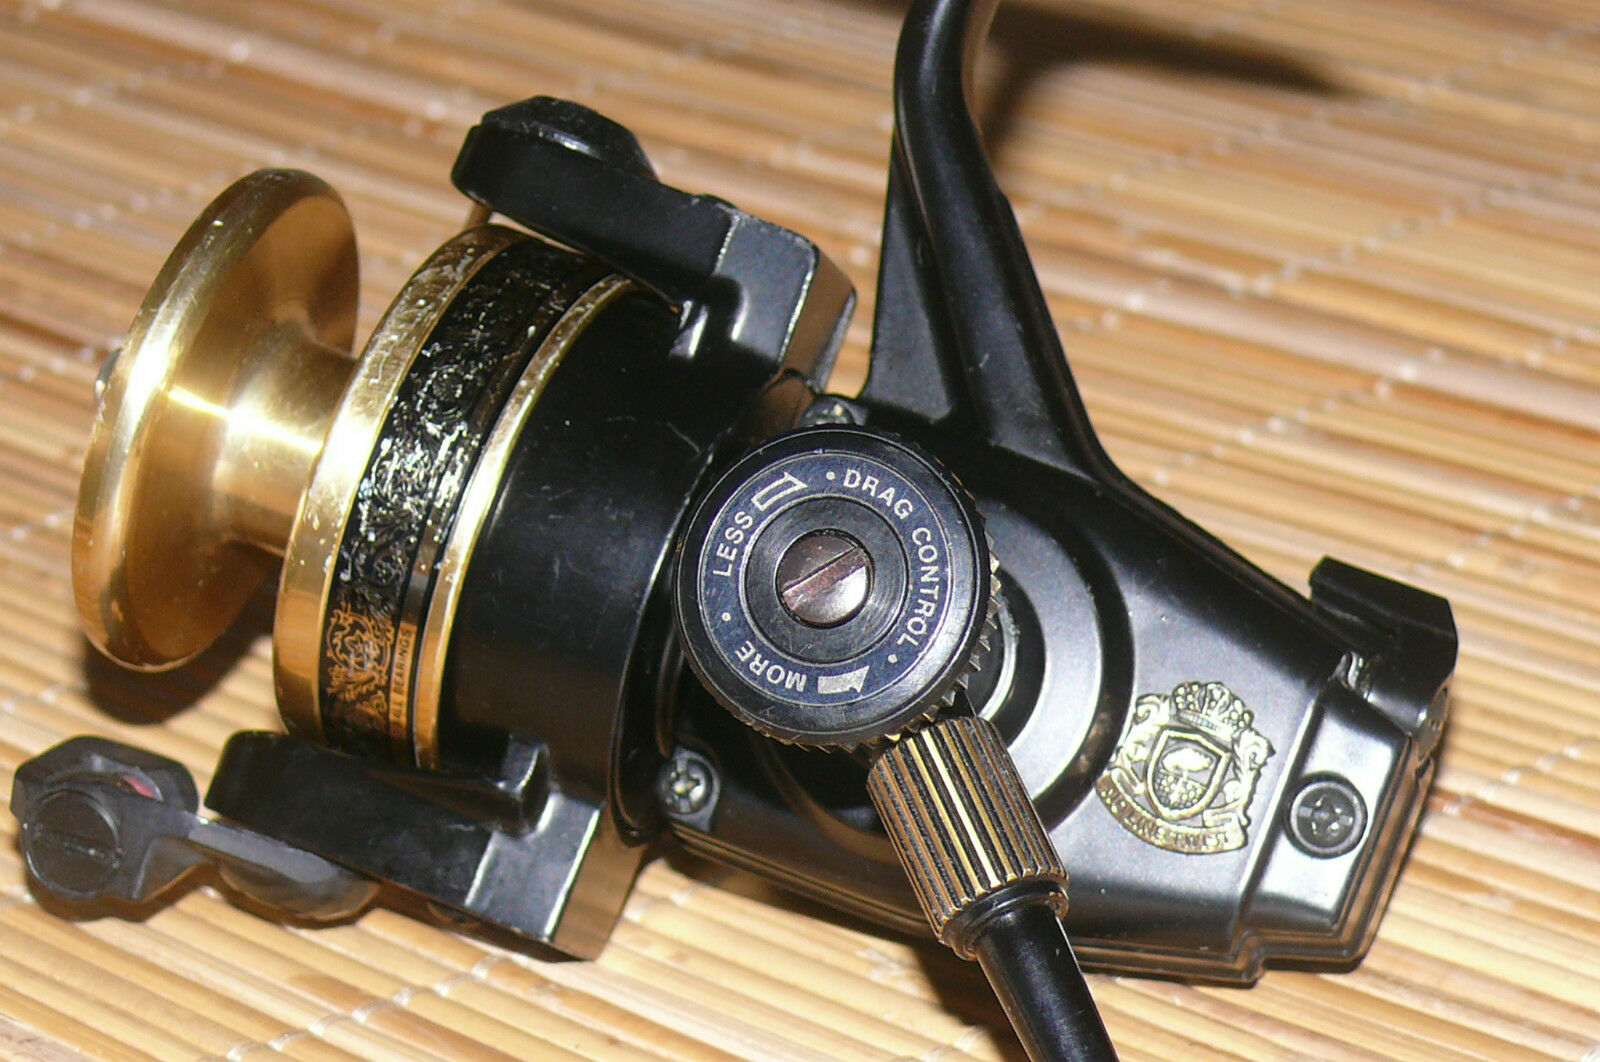 RYOBI DYNAFIGHT 3000 Fishing reel Made in Japan GREAT